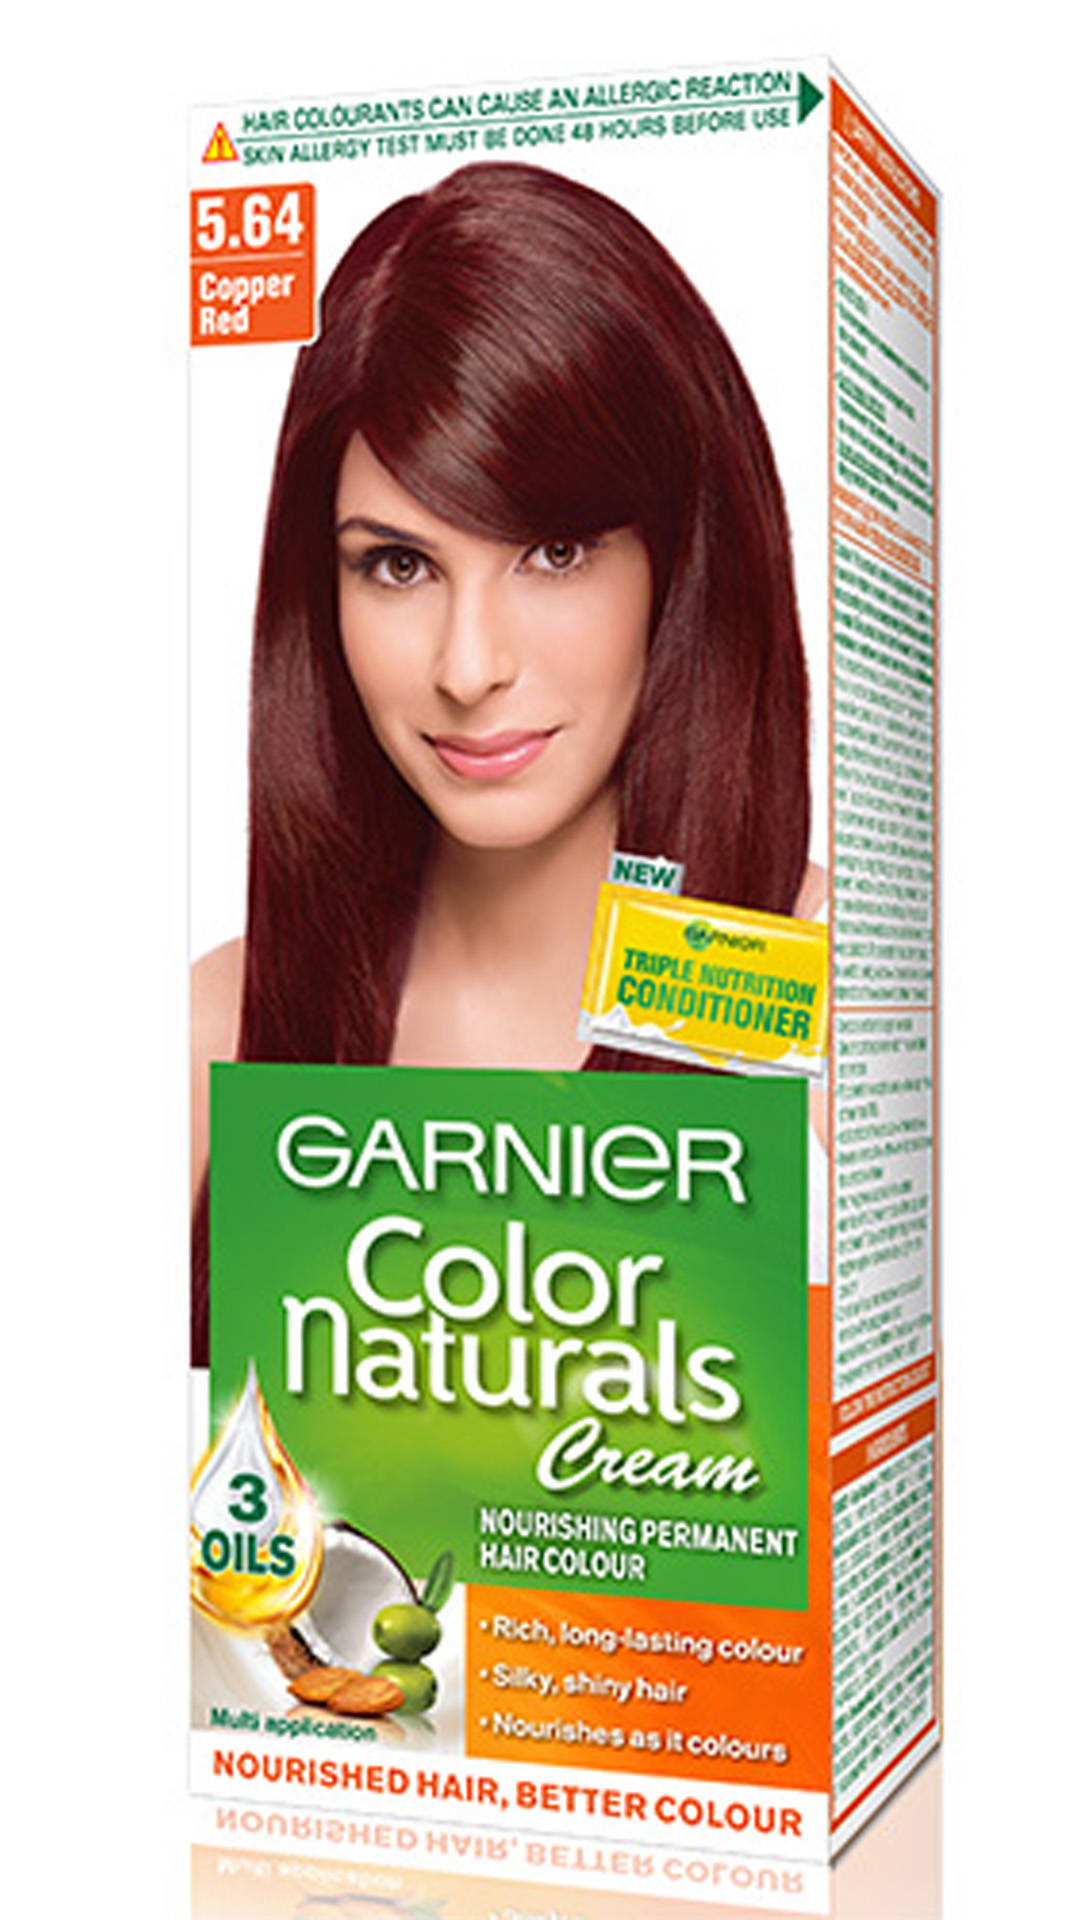 Garnier Hair Color - GARNIER HAIR COLOR Consumer Review ...